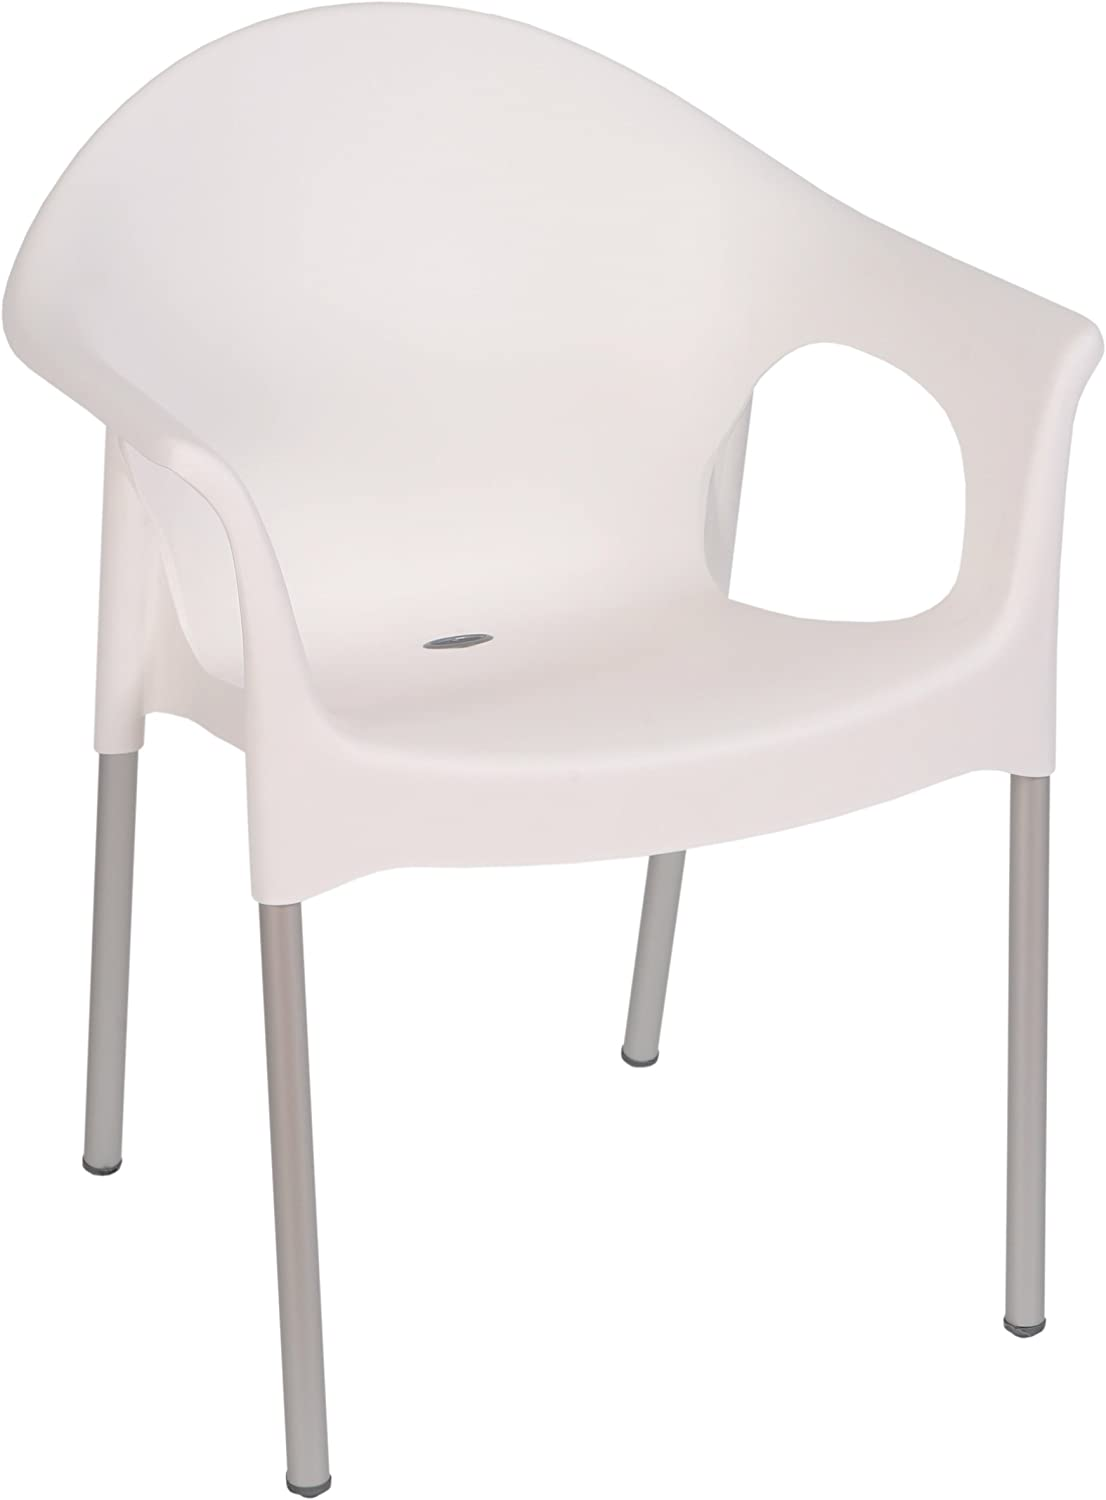 Tensai Lisa Collection Rounded Back Durable Plastic Single Chair, White